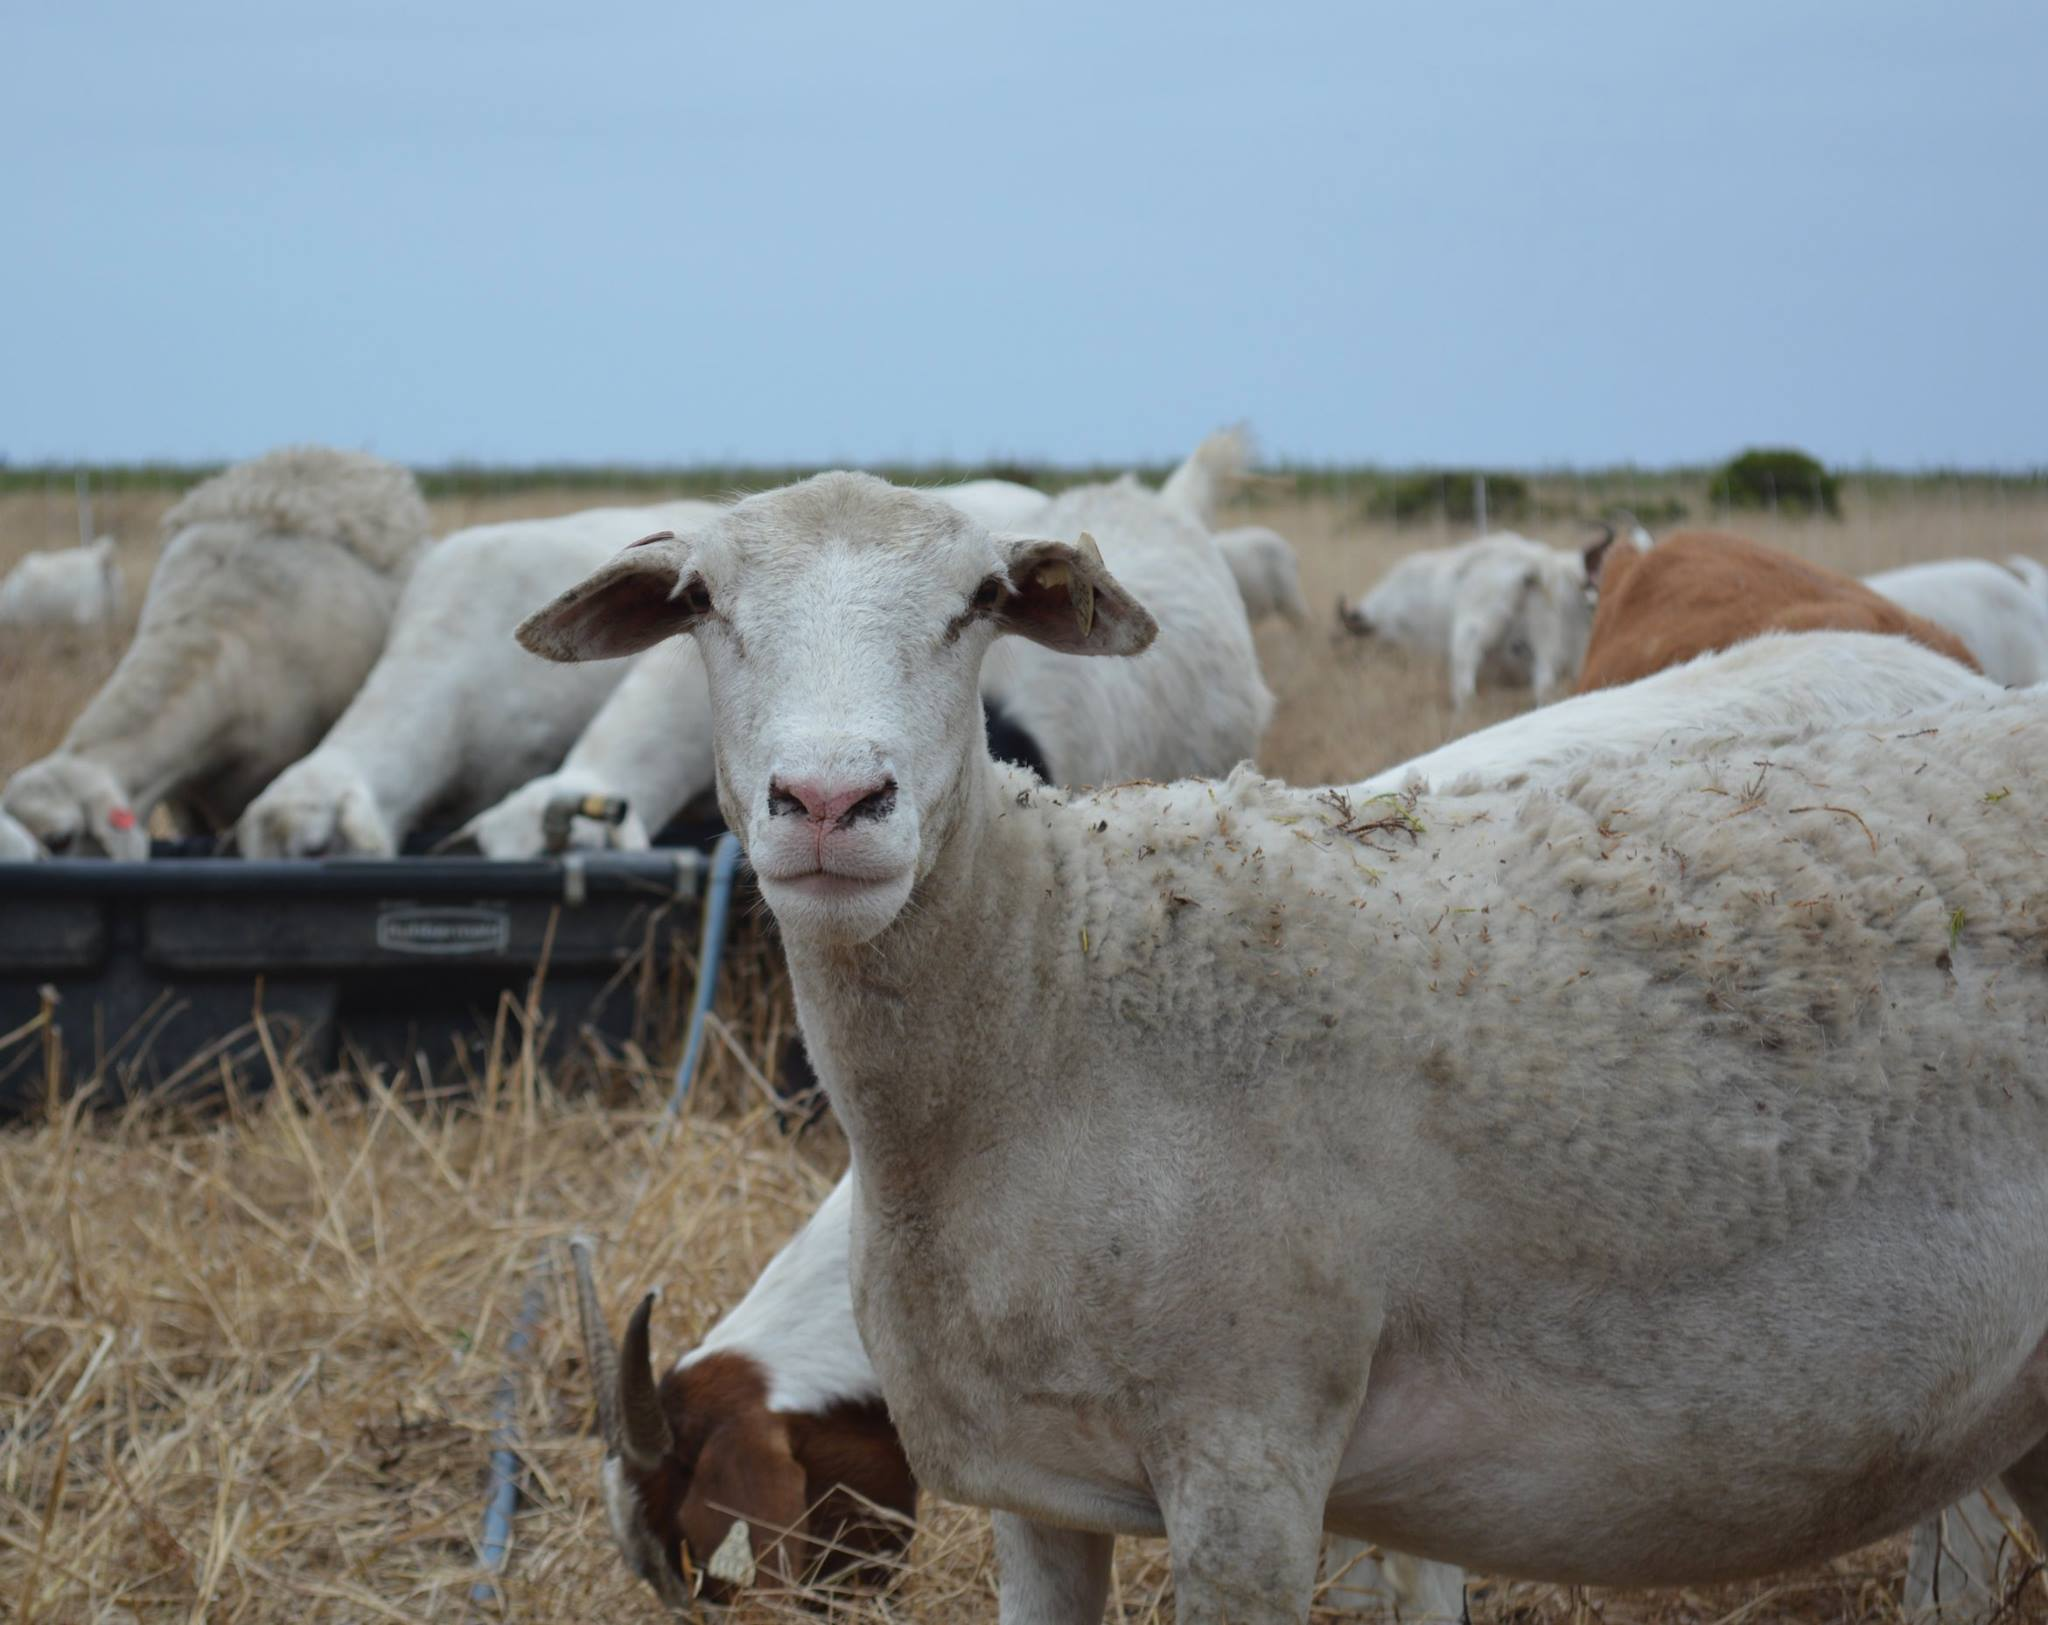 A restoration herd member from a previous year. A white sheep.